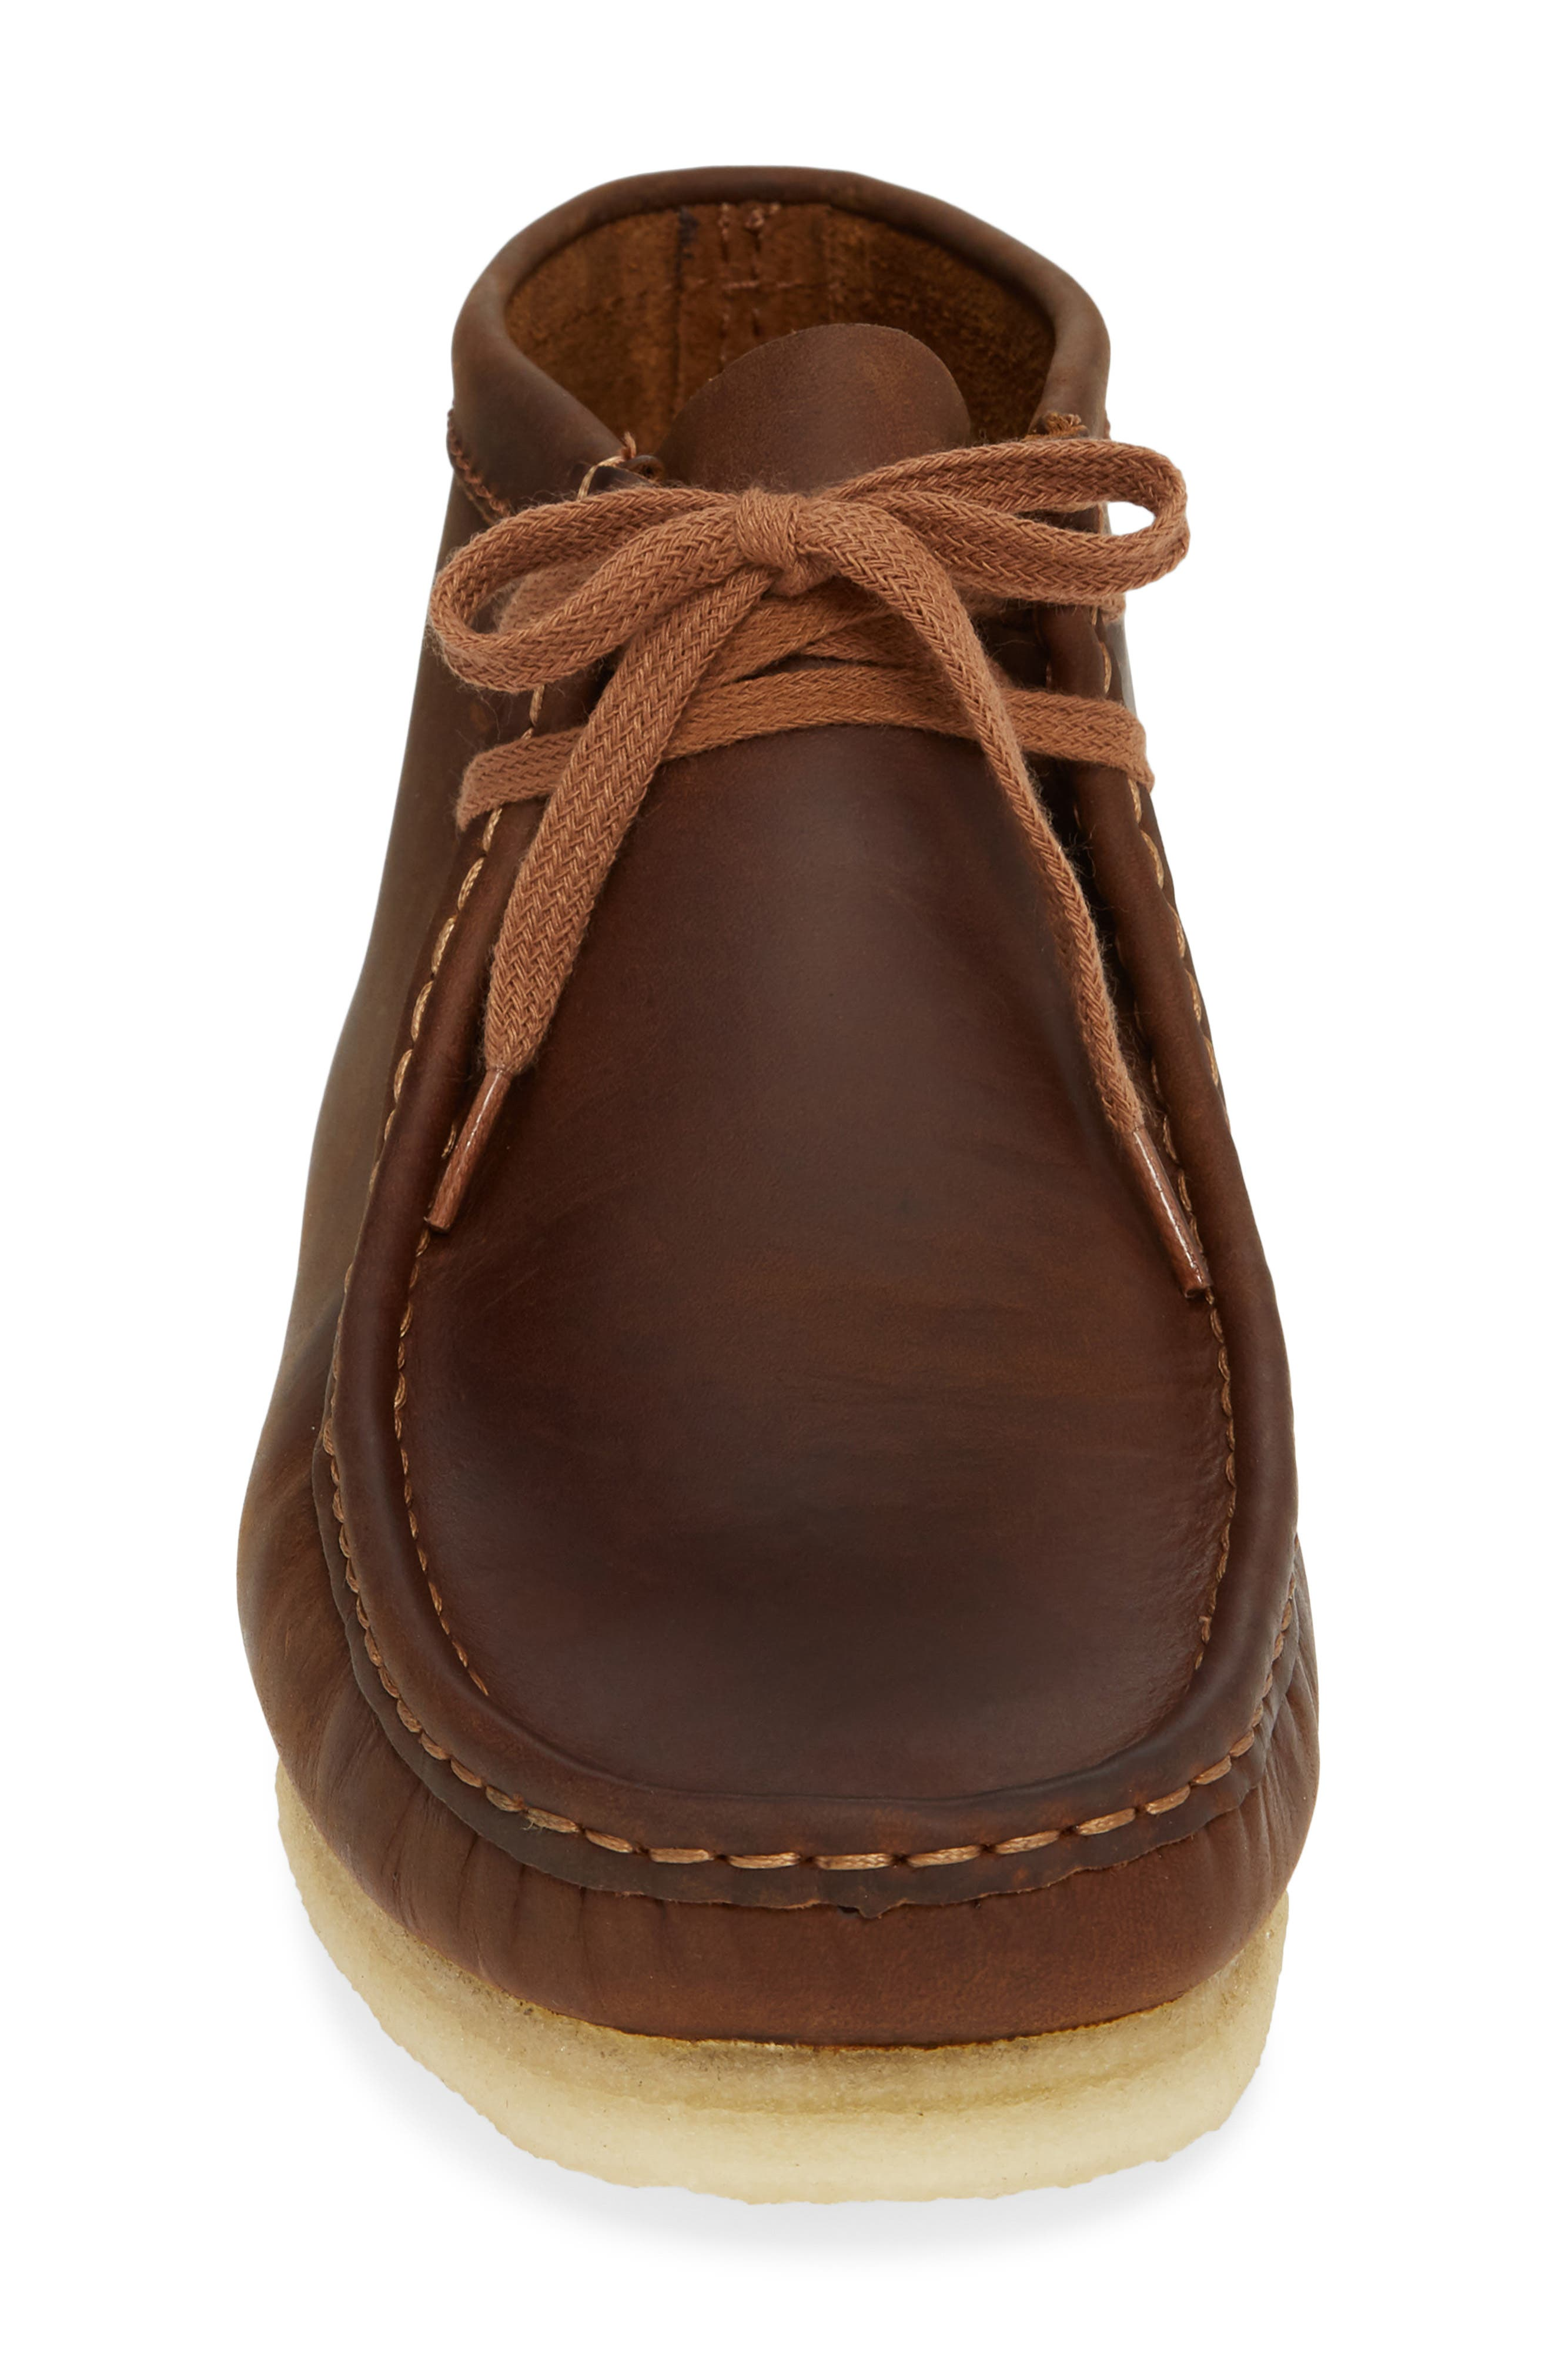 Wallabee Boot,                             Alternate thumbnail 4, color,                             BROWN LEATHER